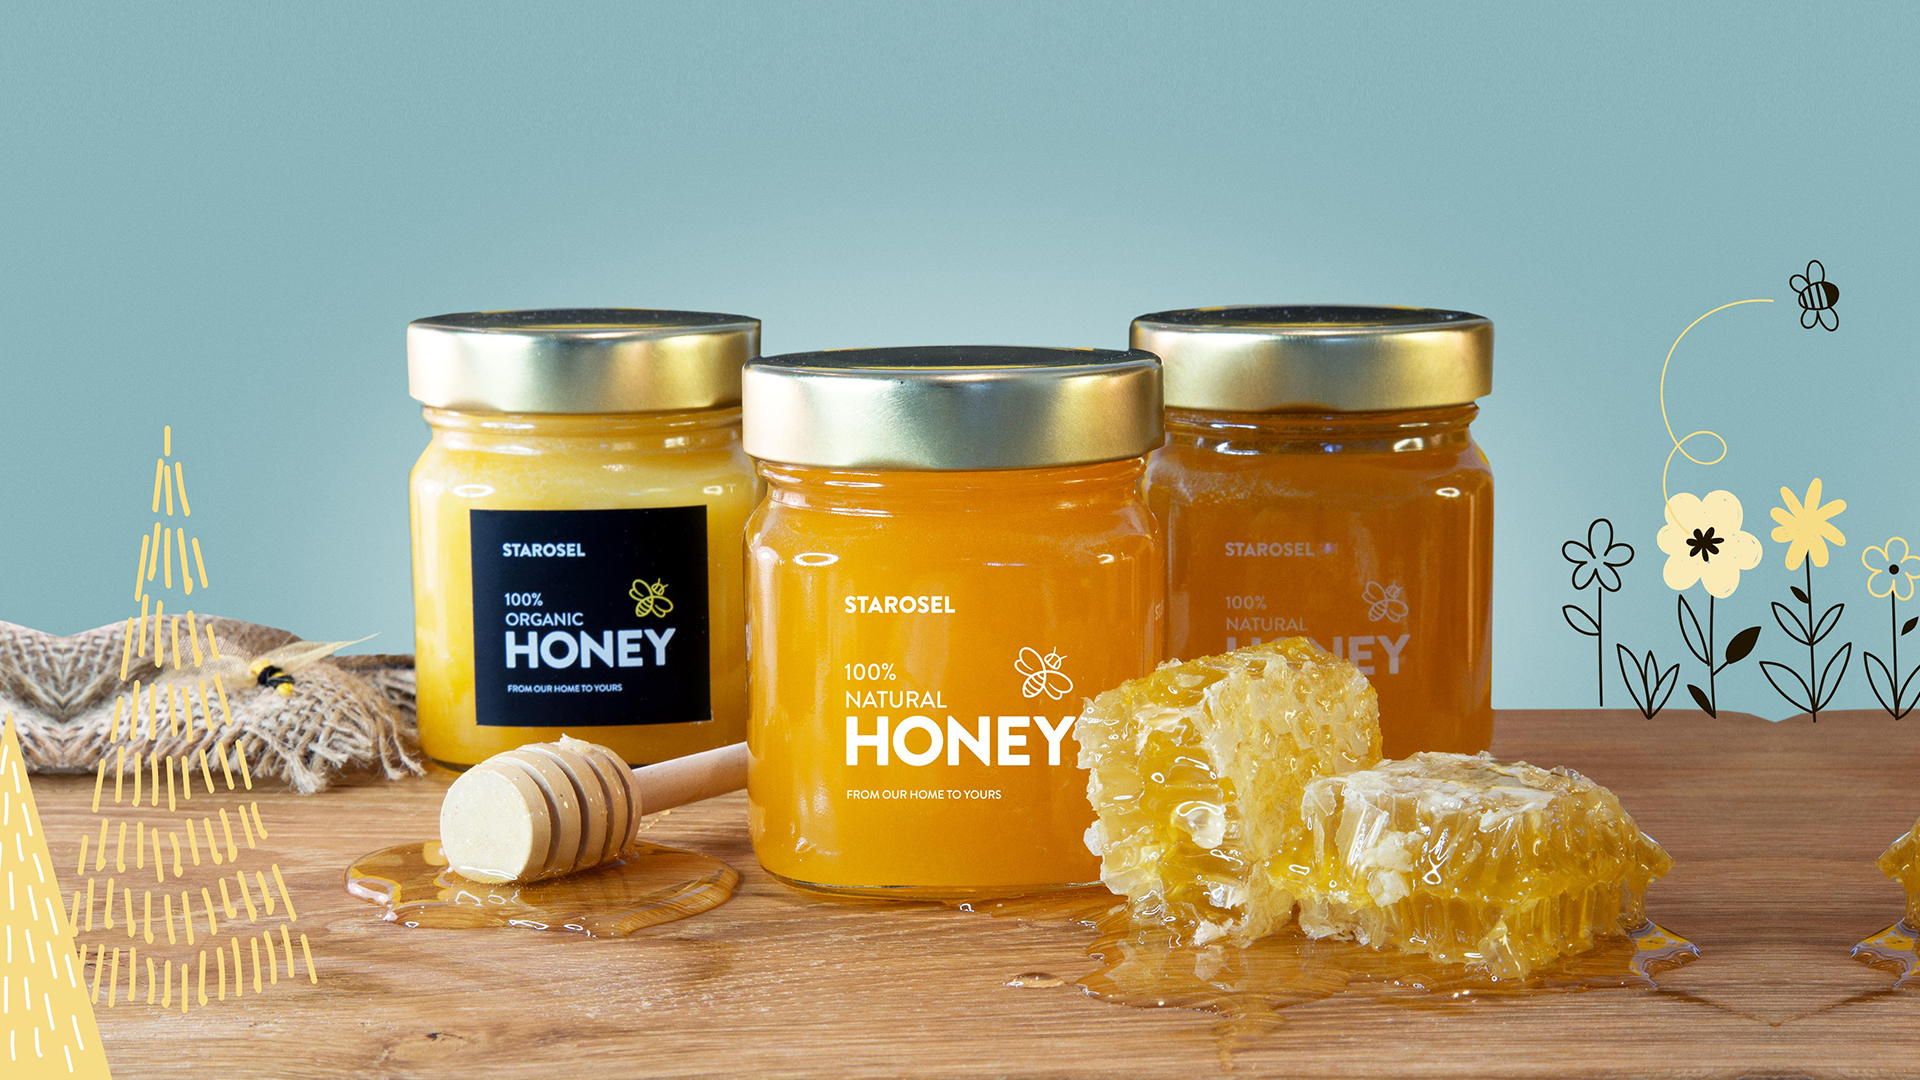 http://Starosel%20Organic%20Honey